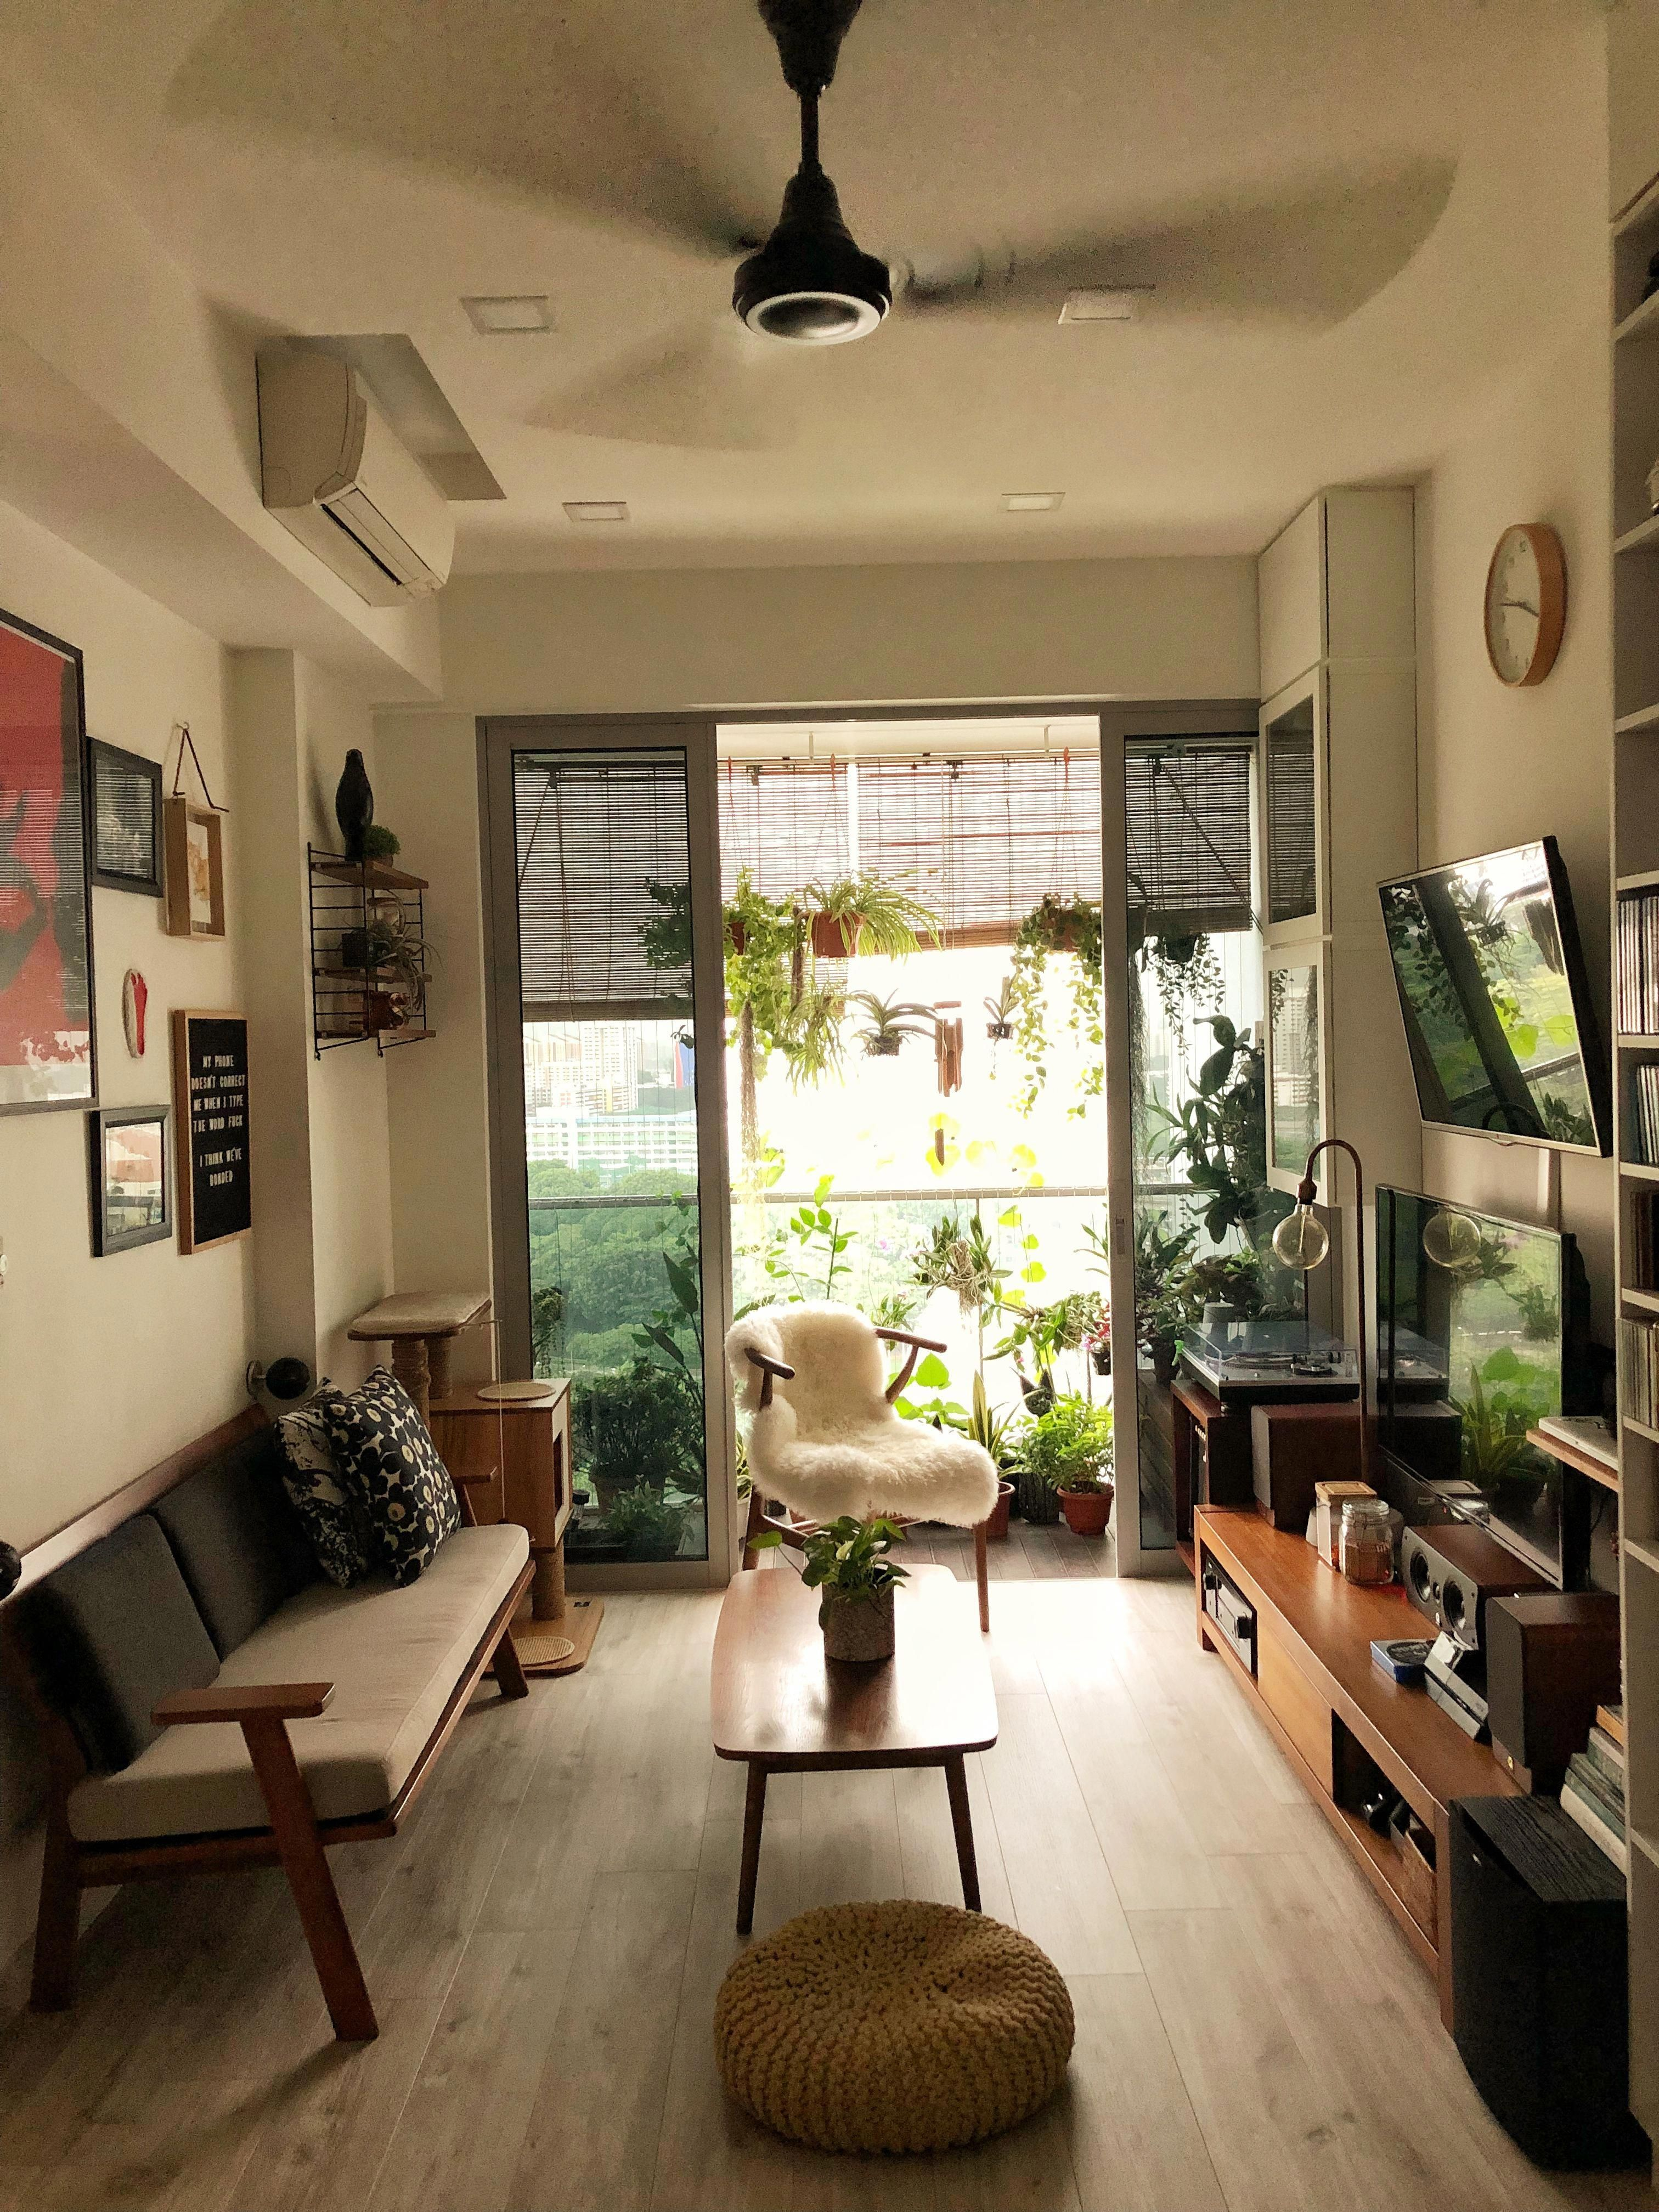 Small Living Room Smalllivingroomfurniturecolour Small House Interior Design Small House Interior Japanese Living Rooms